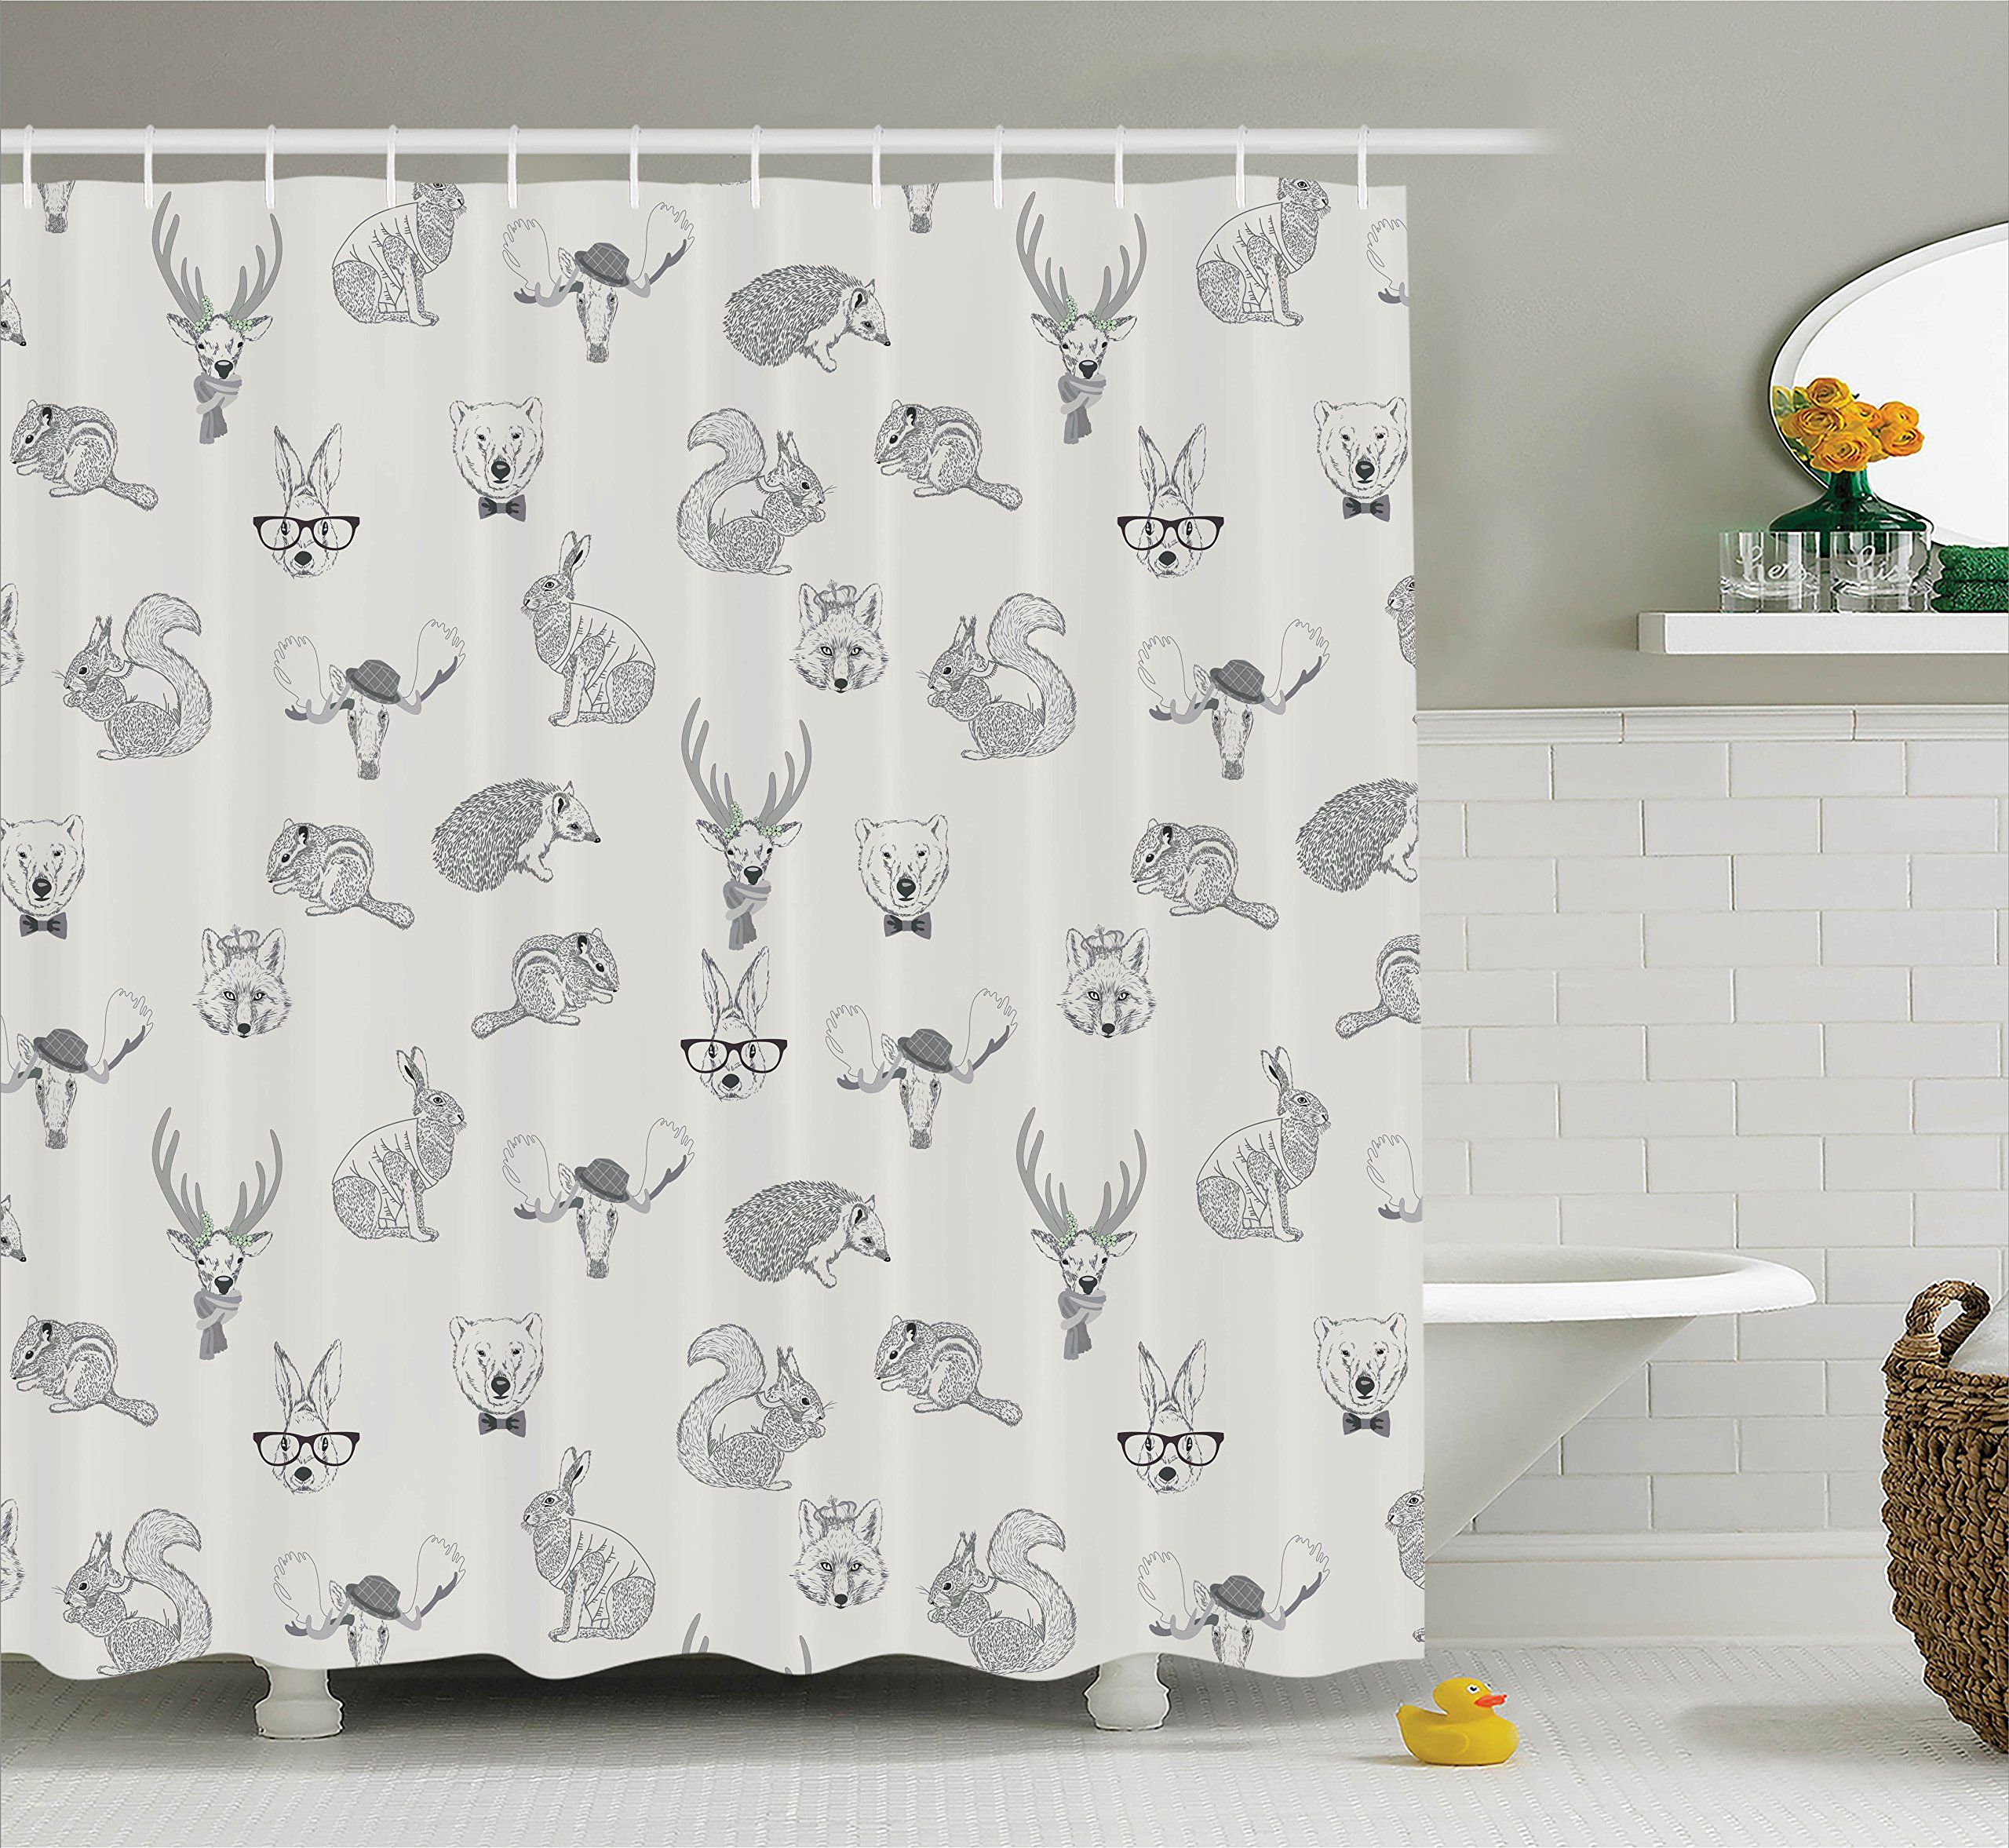 Ambesonne Grey Decor Collection, Illustration of Weird Forest Animals in Retro Style Rabbit Fox Dear Wild Life Boho Chic Art Home, Polyester Fabric Bathroom Shower Curtain Set with Hooks, Gray by Ambesonne